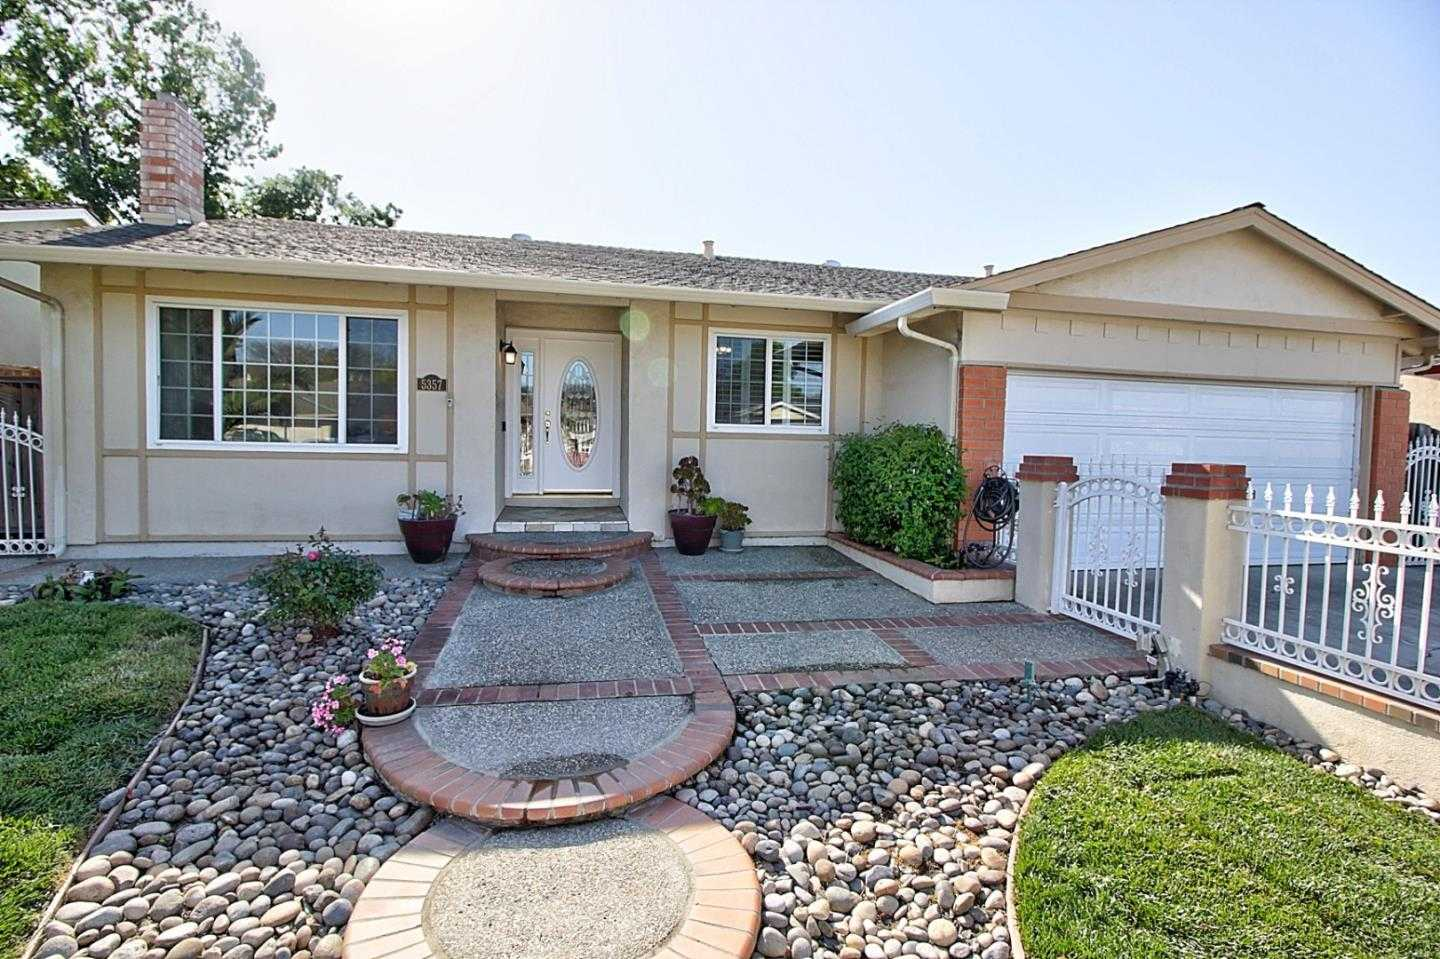 $1,049,900 - 4Br/2Ba -  for Sale in San Jose